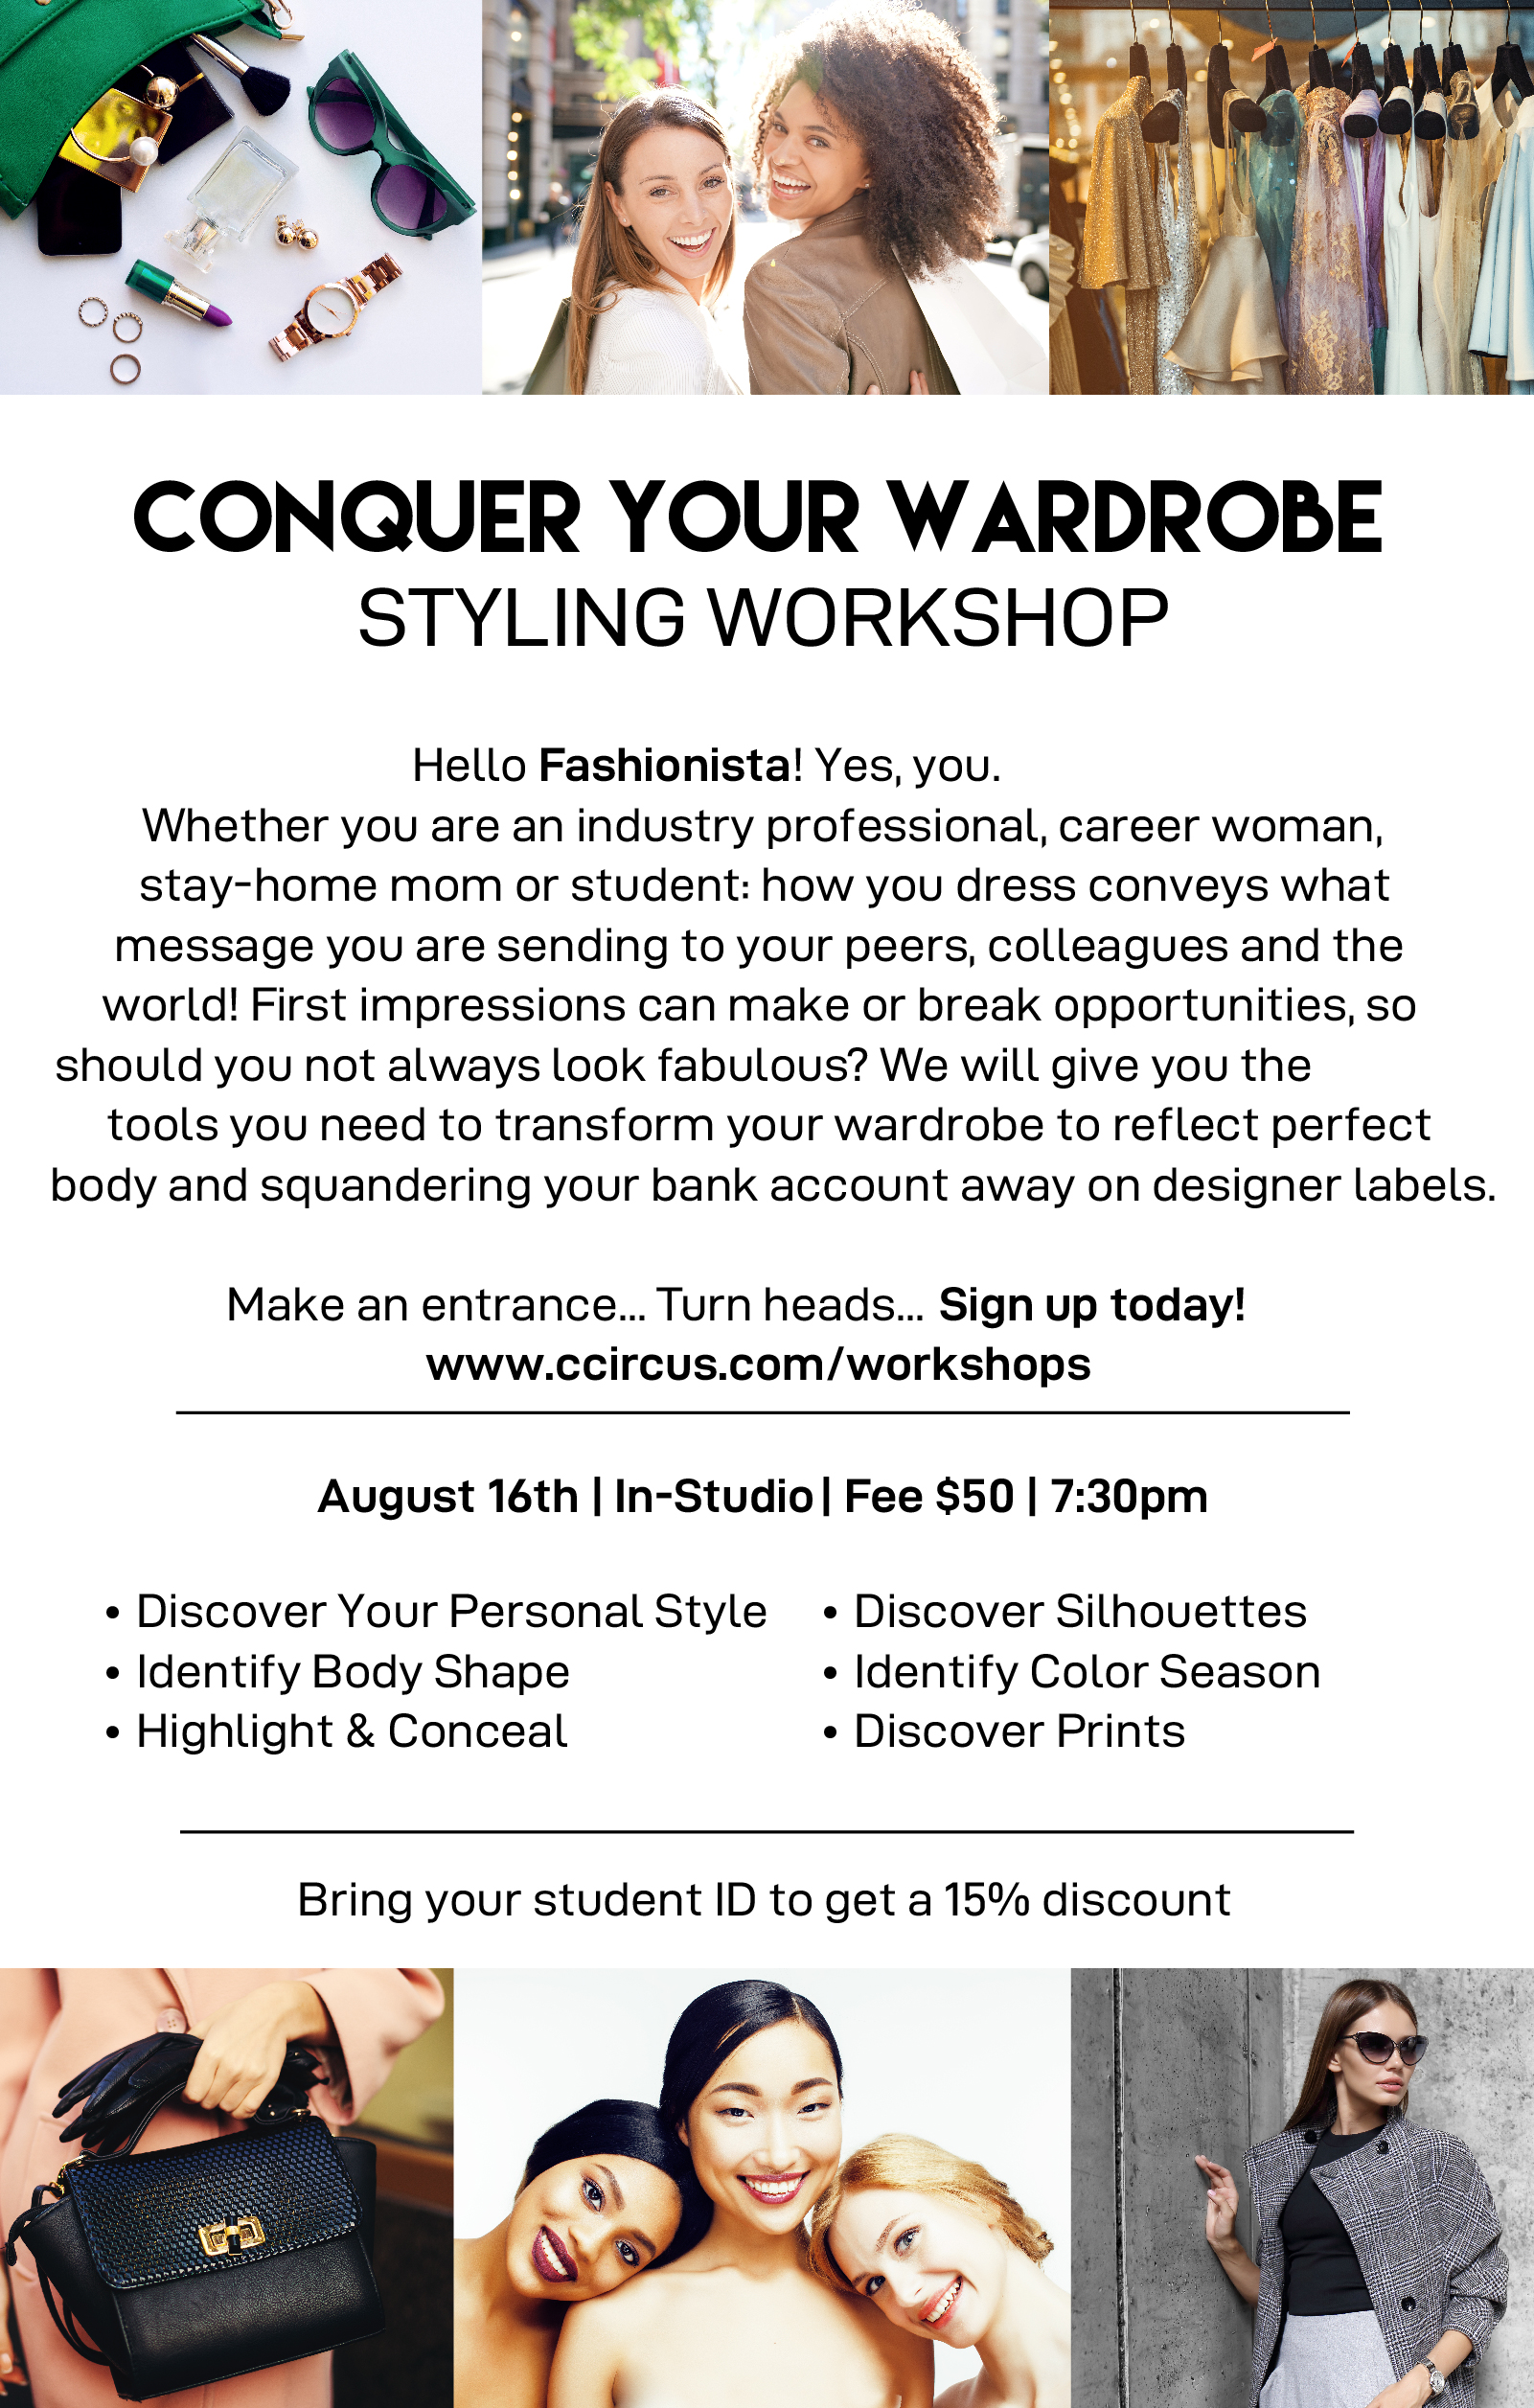 Conquer-your-wardrobe-graphic-01.jpg